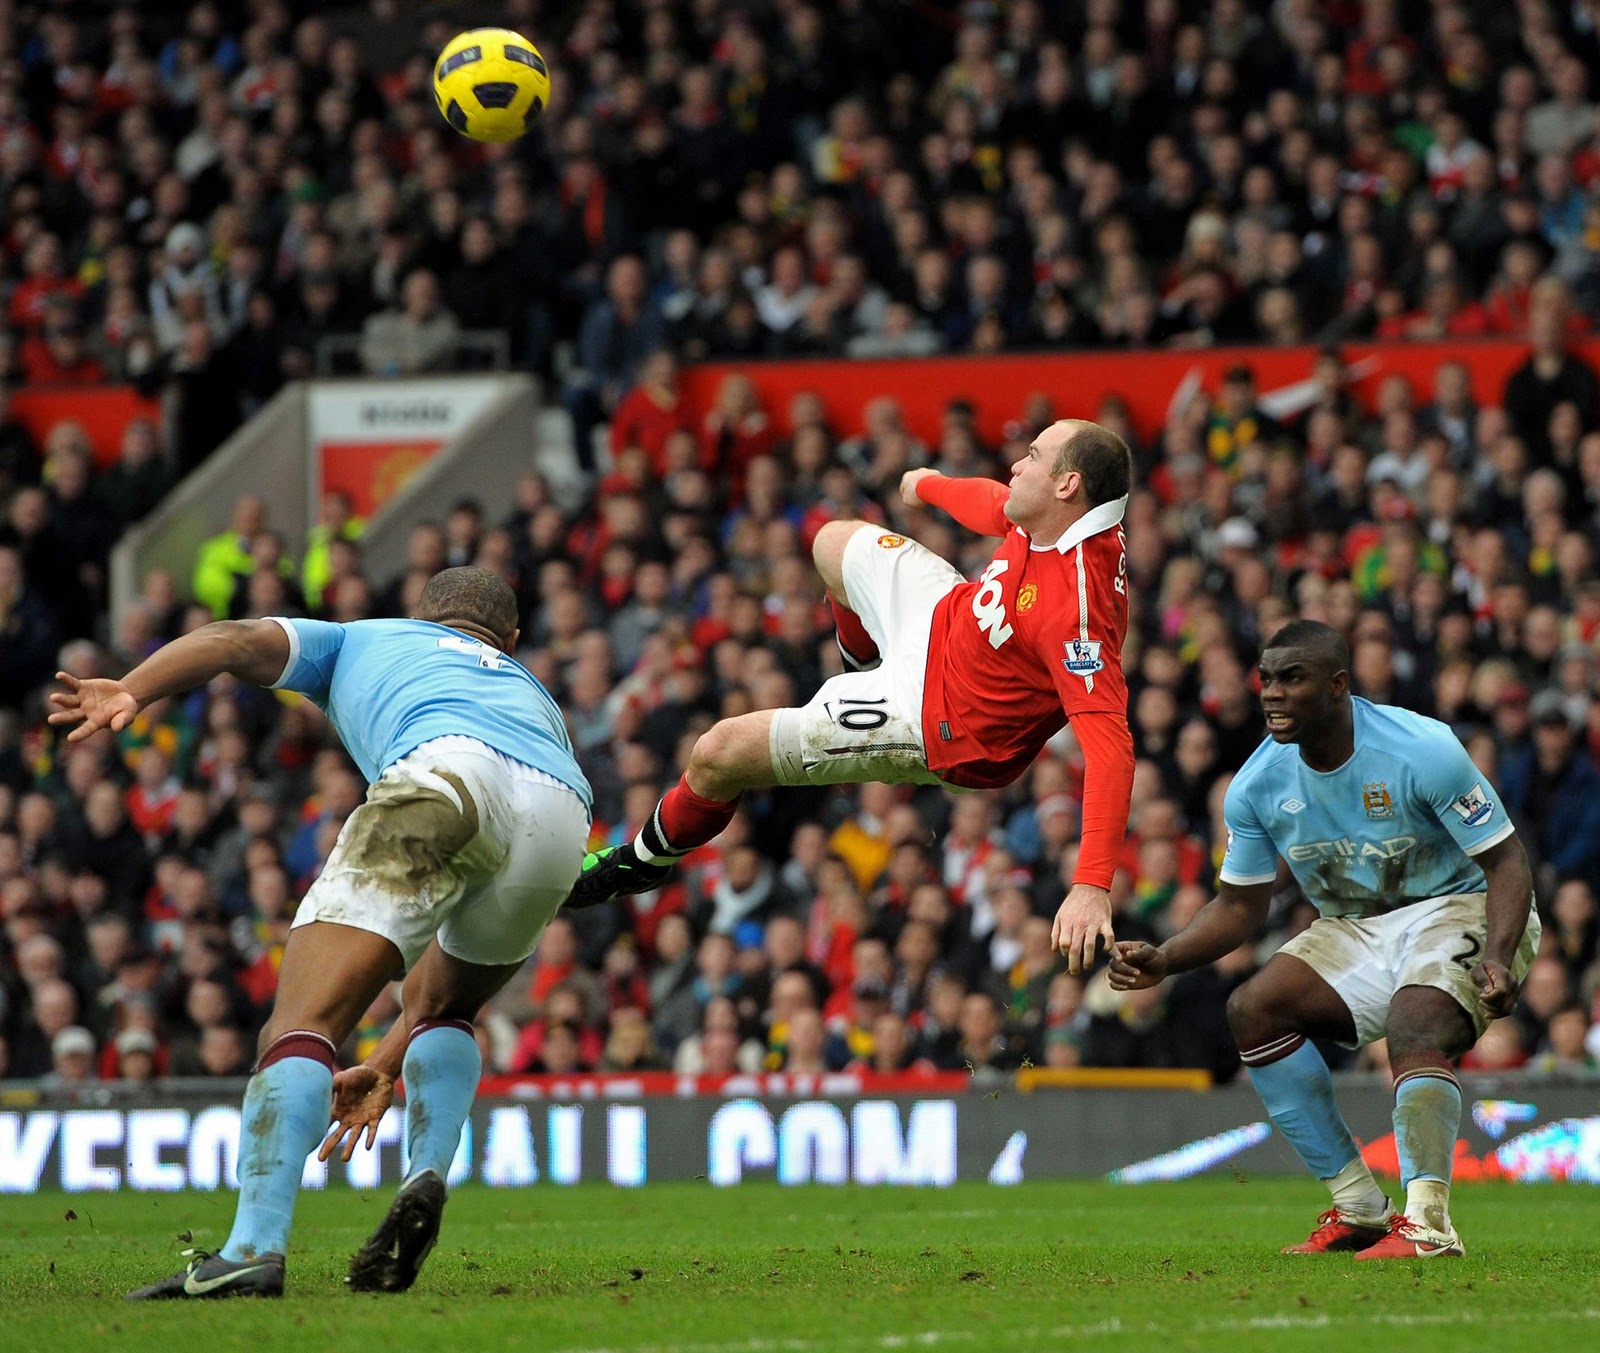 Wayne Rooney Overhead Kick Vs Man City Video Superb Goal by Wayne Rooney Man Utd vs Manchester City